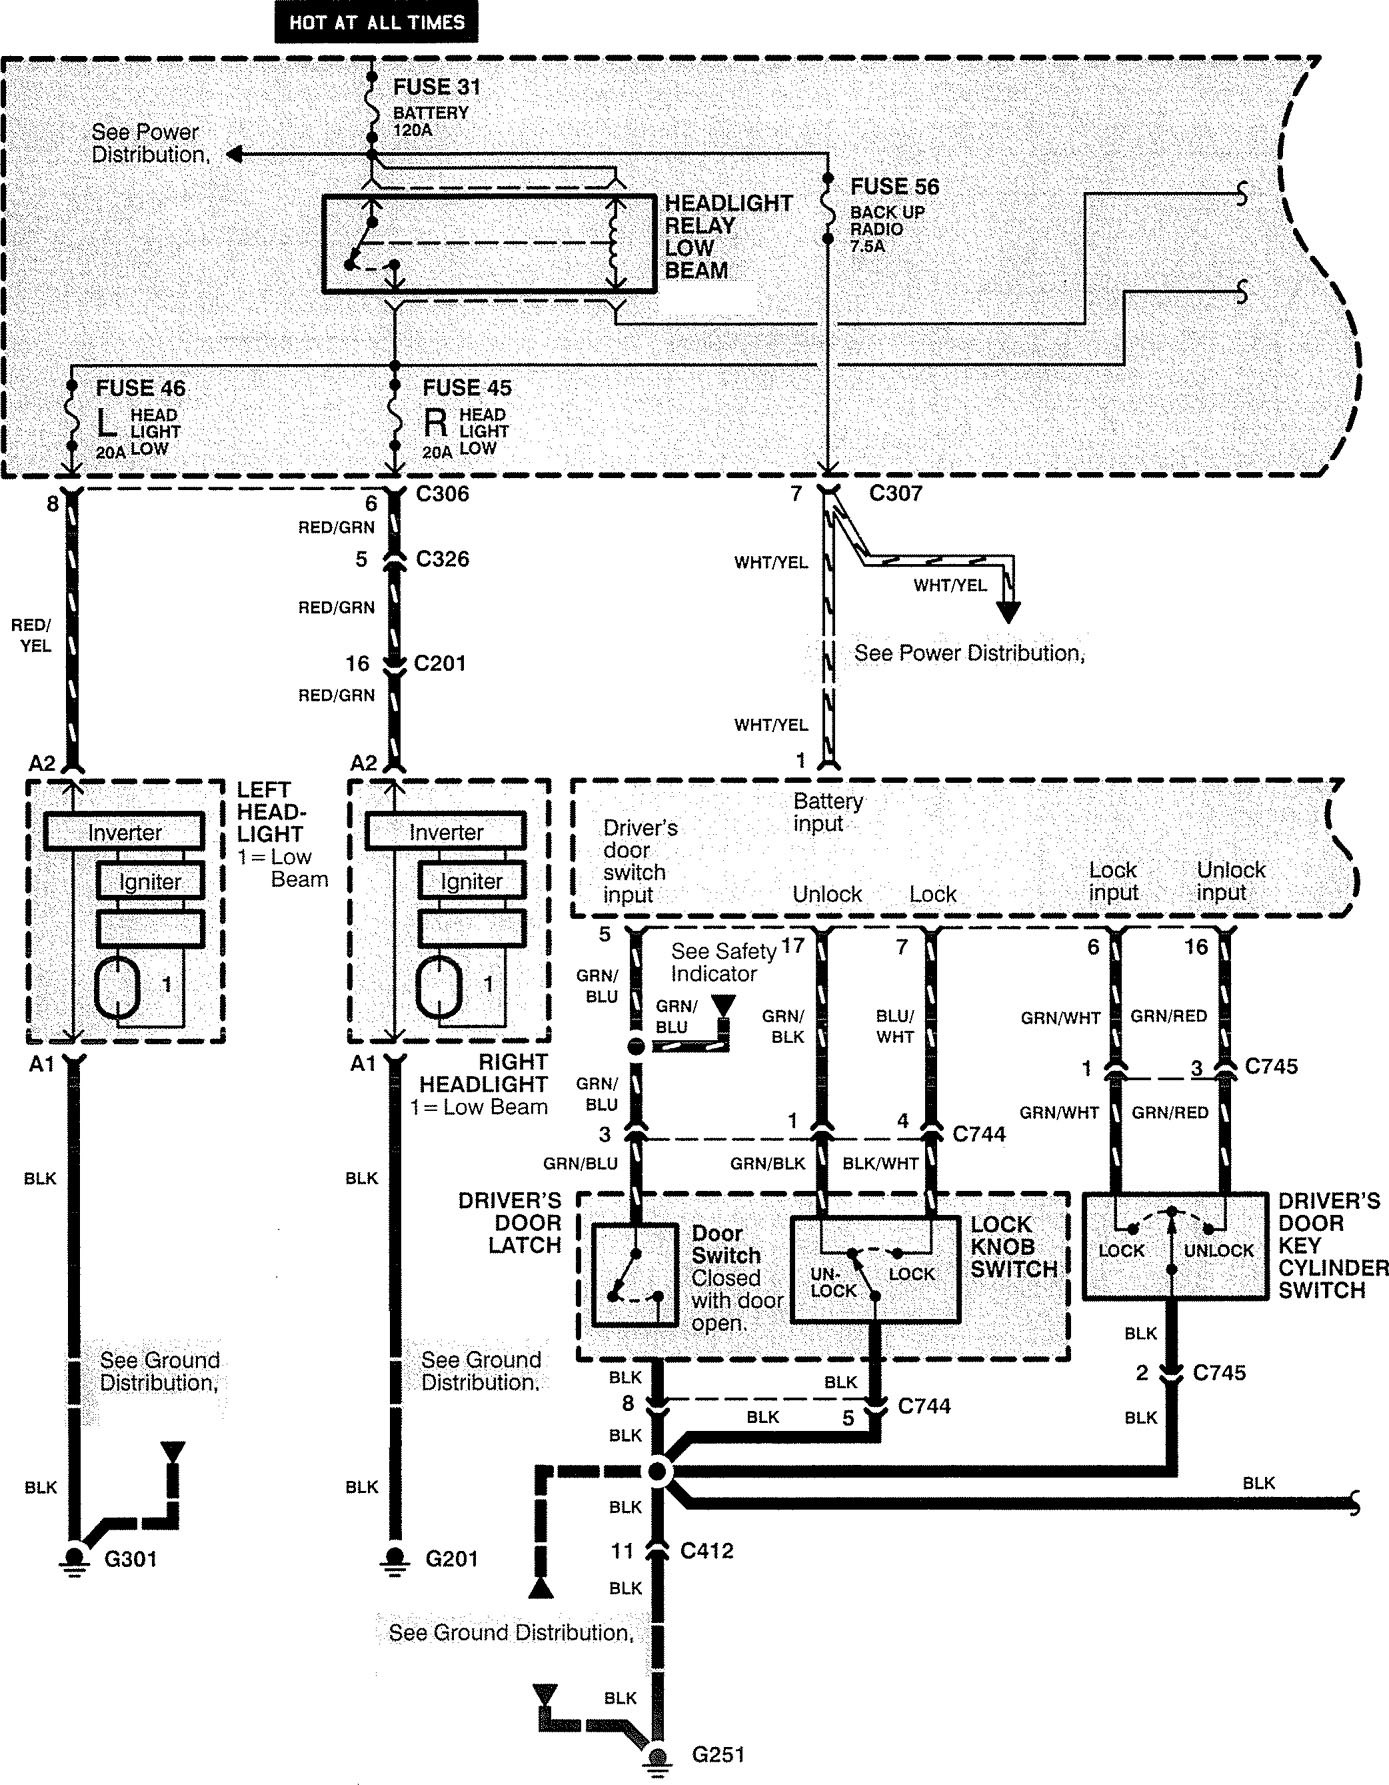 1999 Acura Rl Wiring Diagram Detailed Schematics 2004 Rsx Diagrams Security Anti Theft Carknowledge 2006